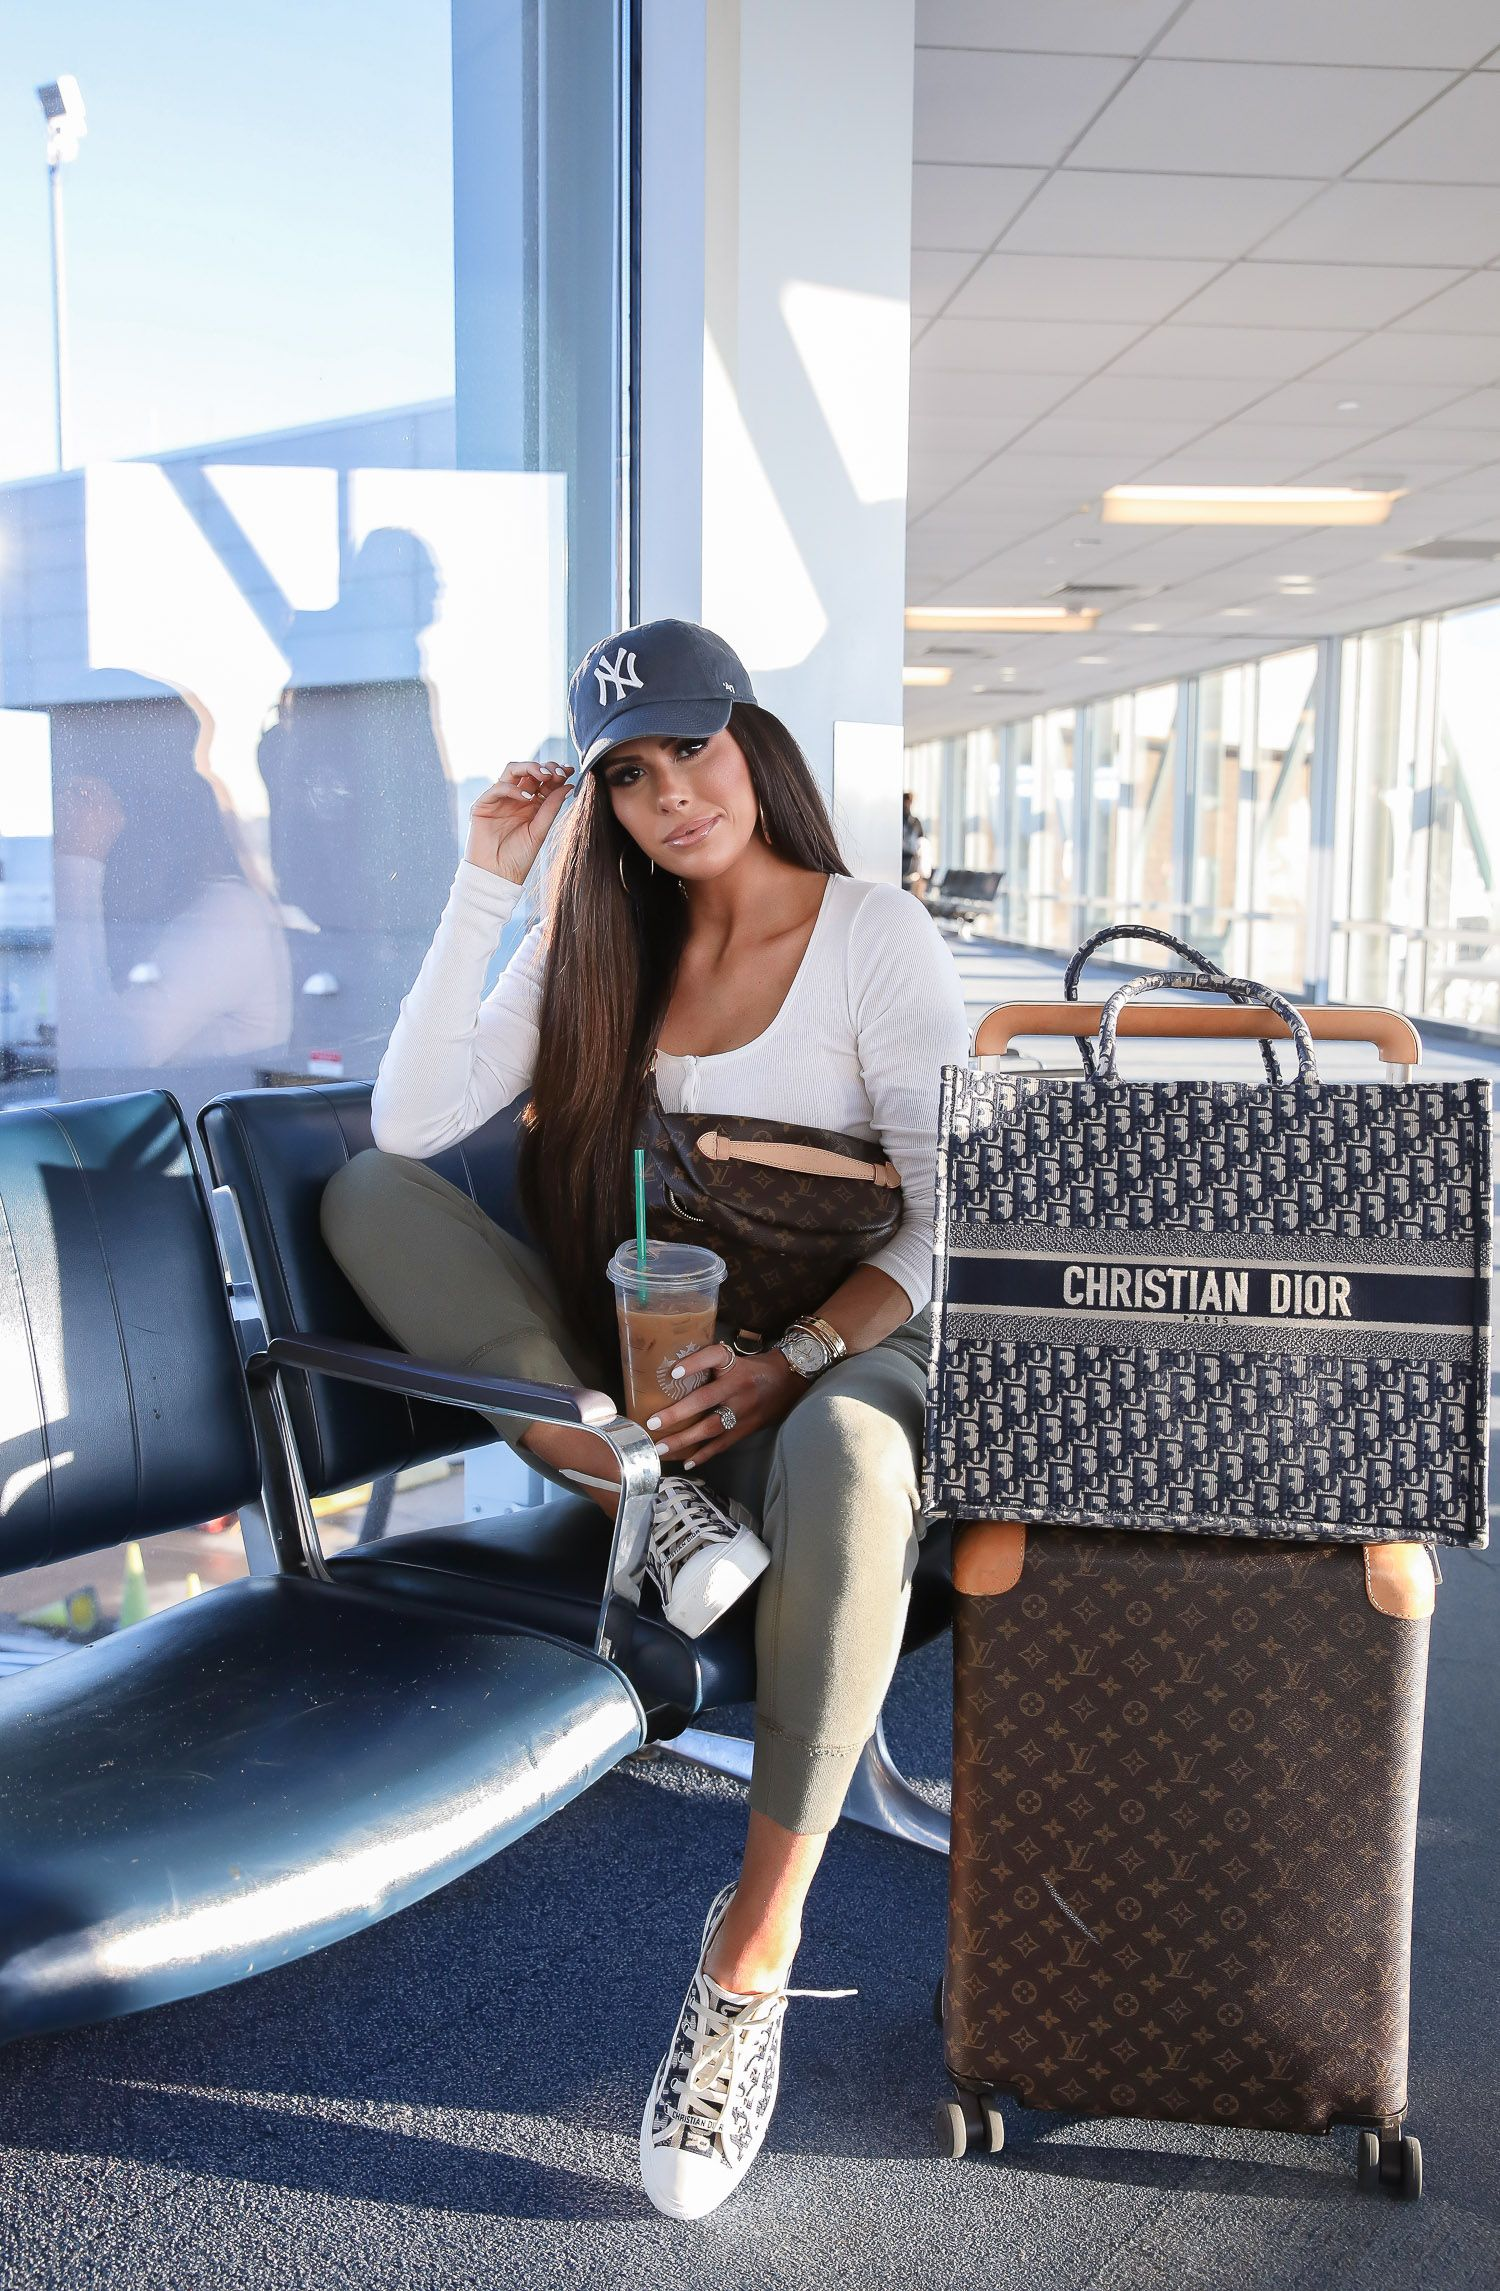 Airport Style Us Travel And Fashion The Sweetest Thing In 2020 Dior Sneakers Airport Style Airport Outfit